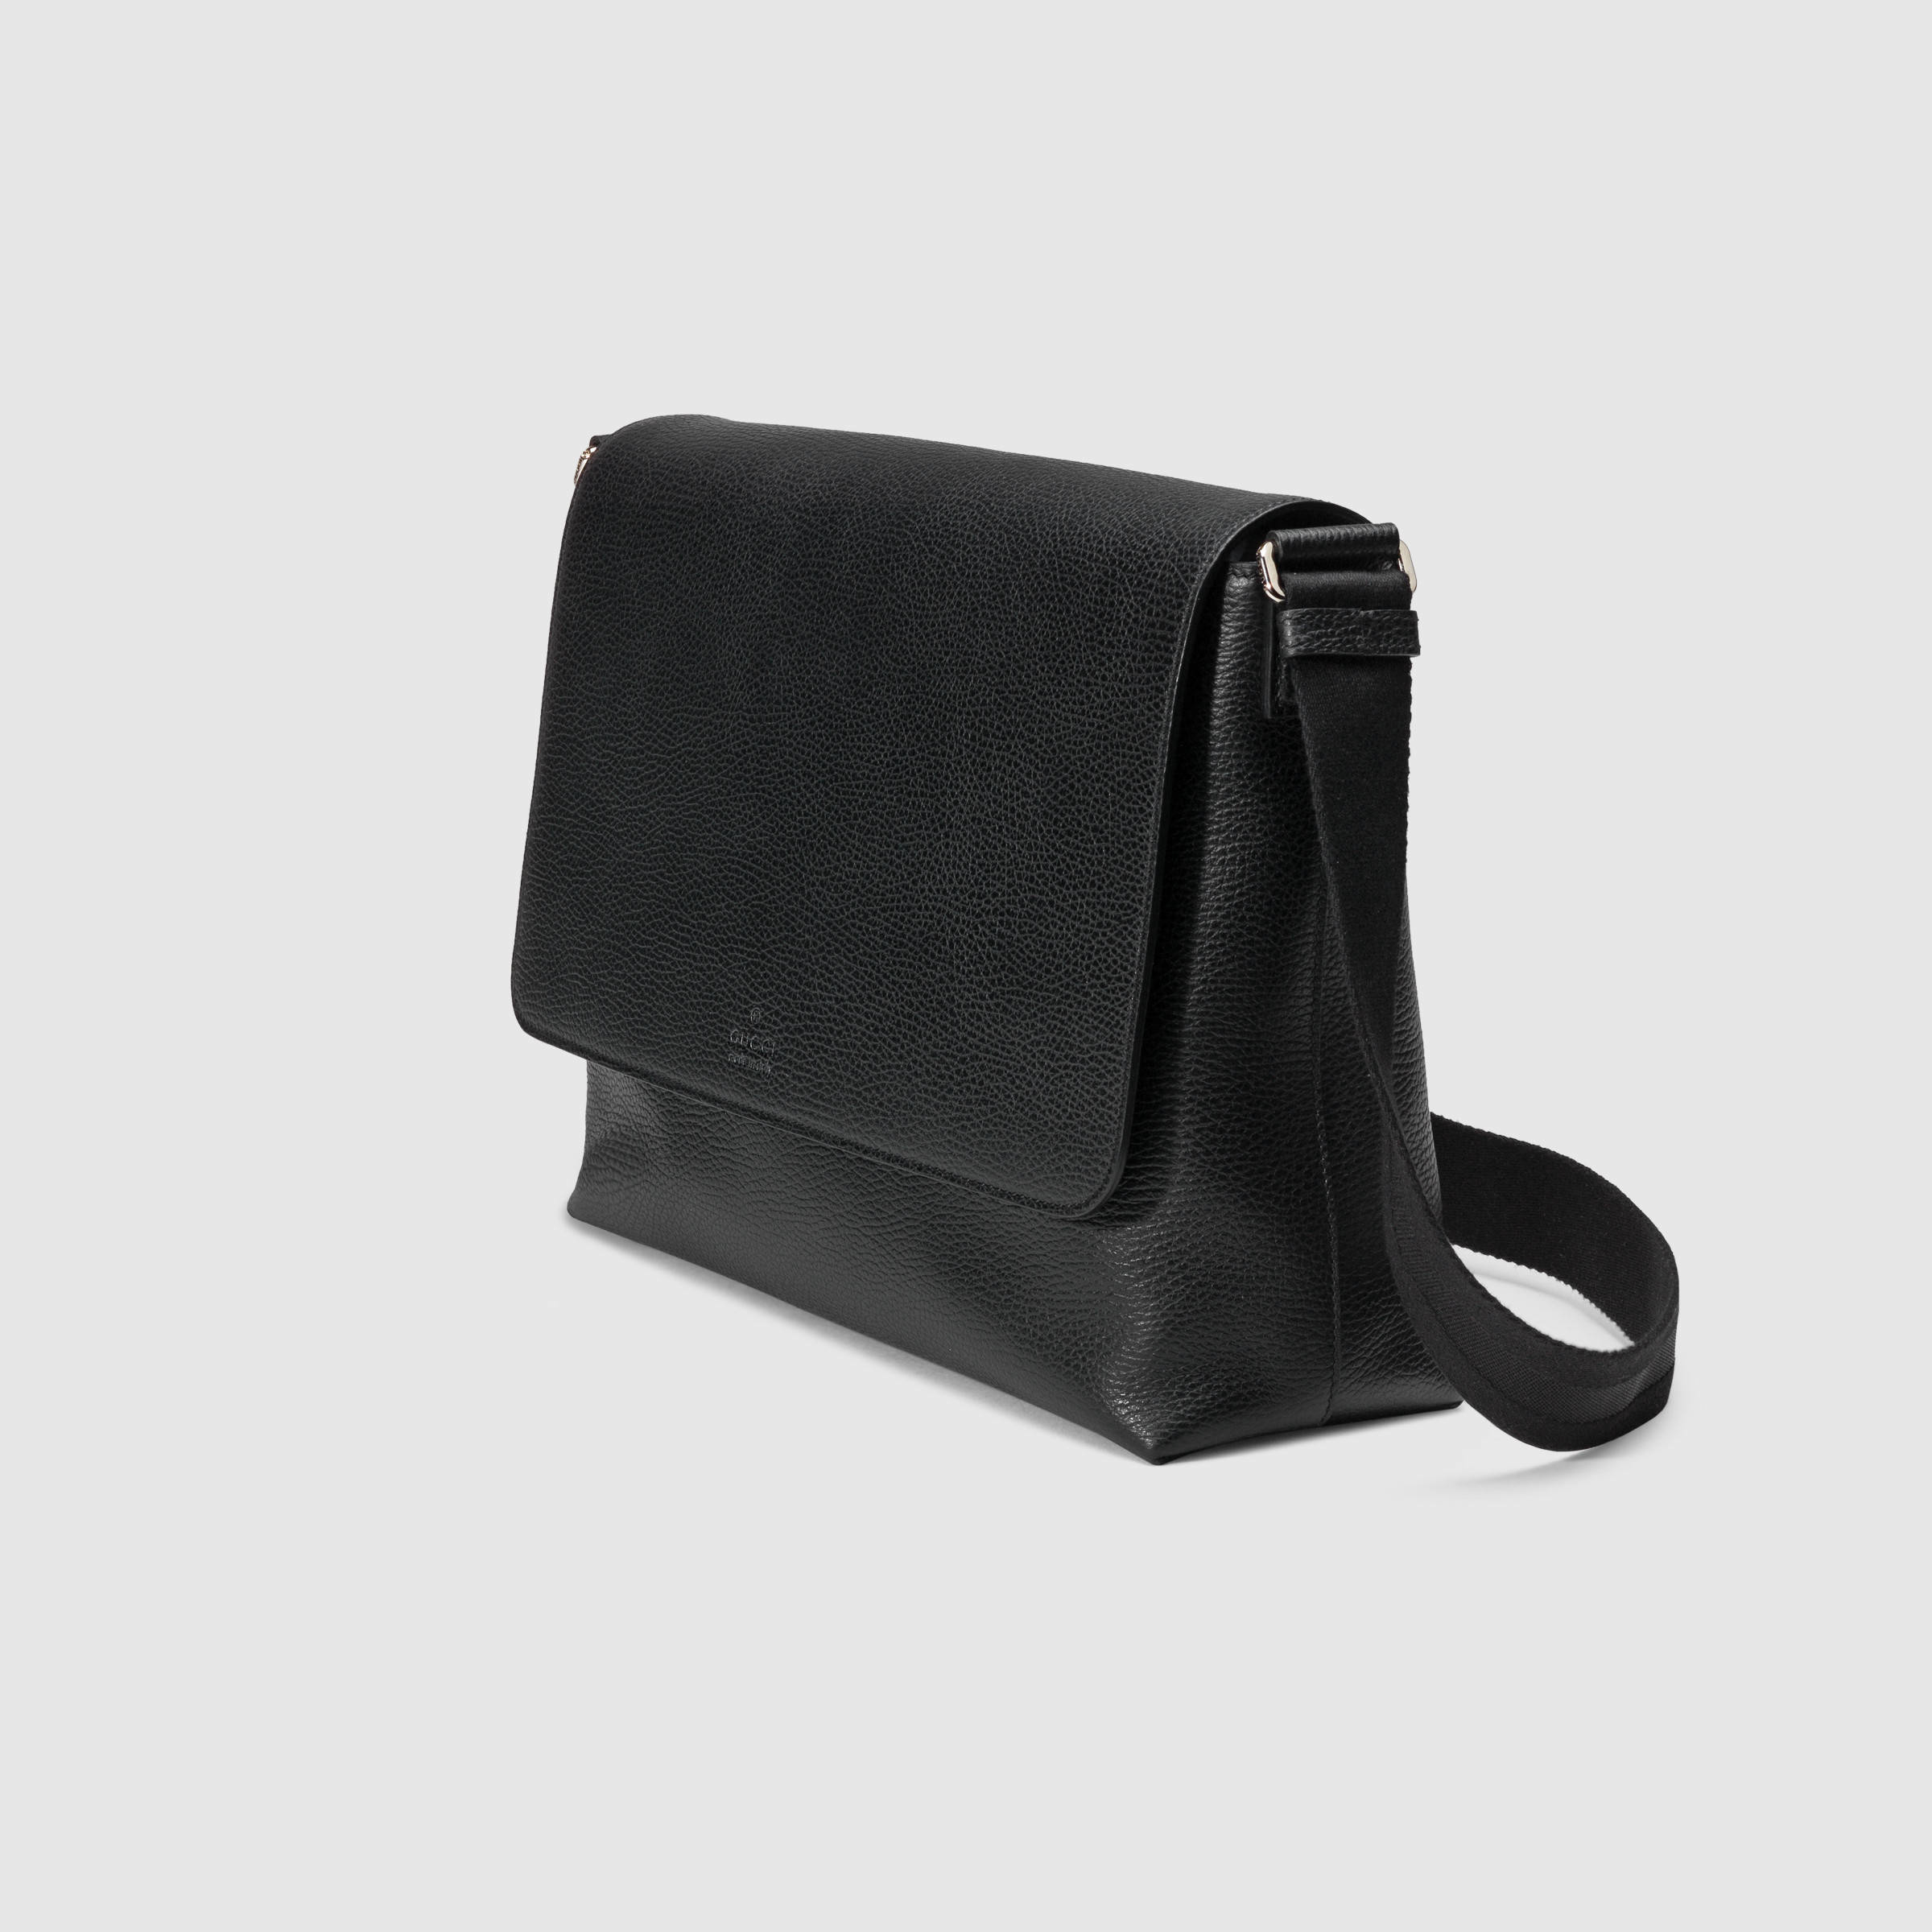 a3cac9636ed451 Gucci Leather Messenger Bag in Black for Men - Lyst